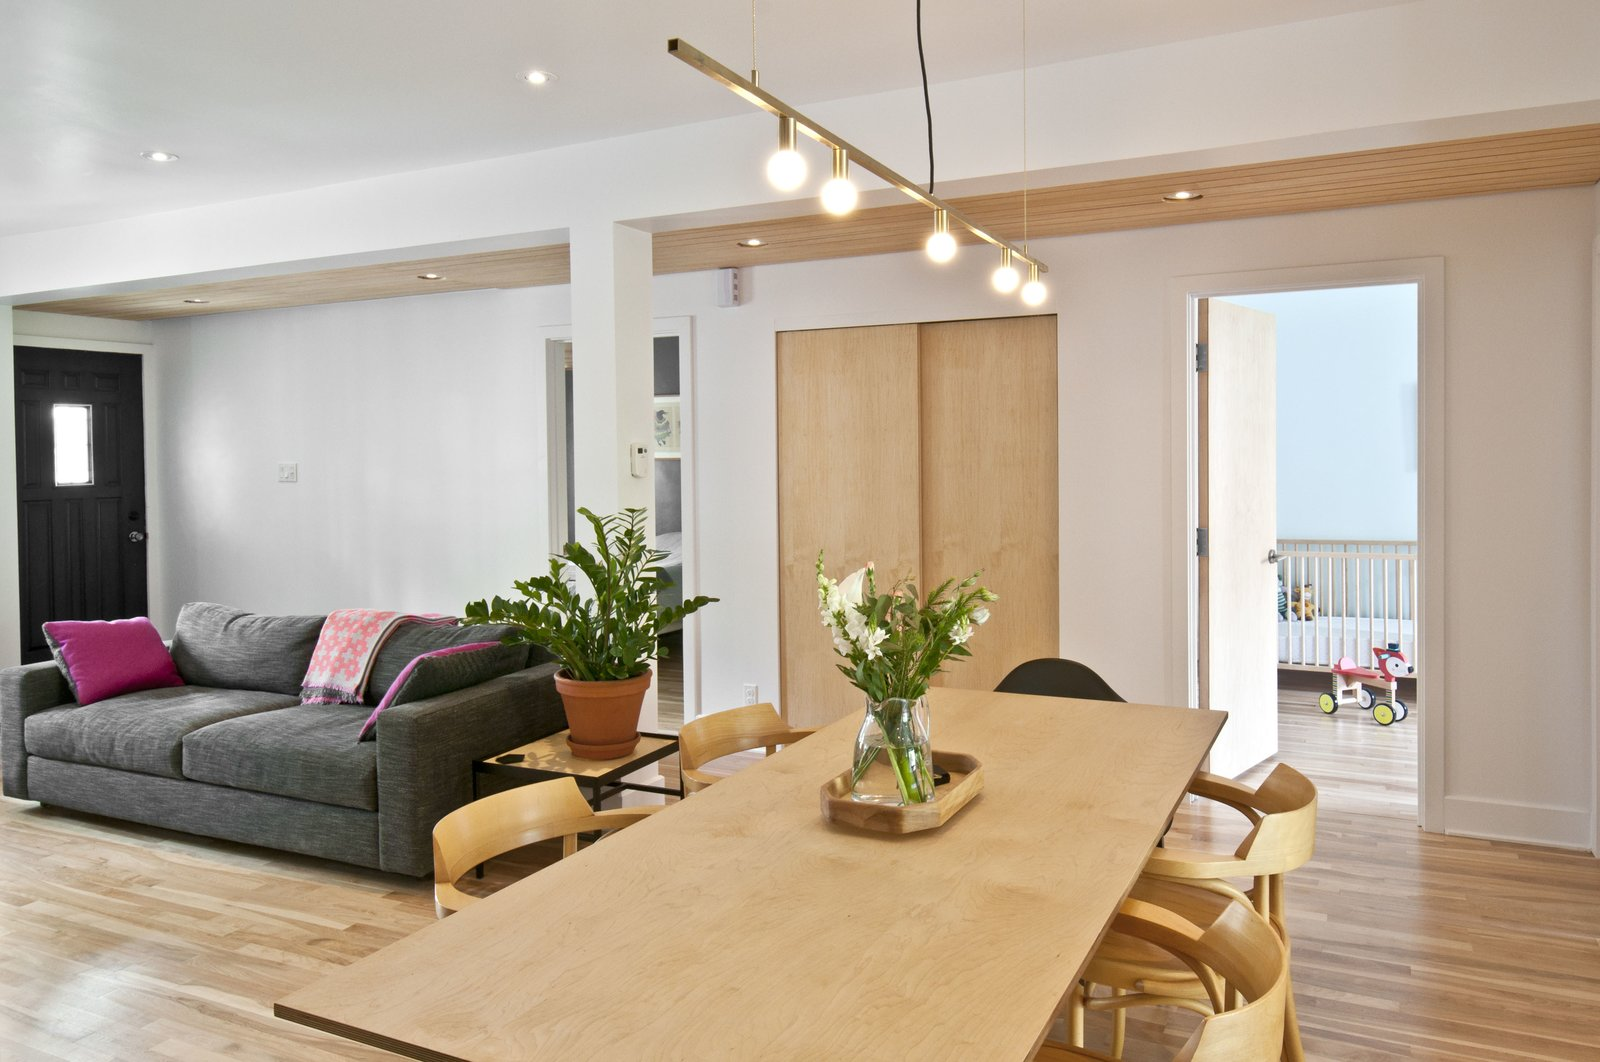 Tagged: Dining Room, Pendant Lighting, Chair, Light Hardwood Floor, and Table.  Fabre Residence by Jonathan Dorthe